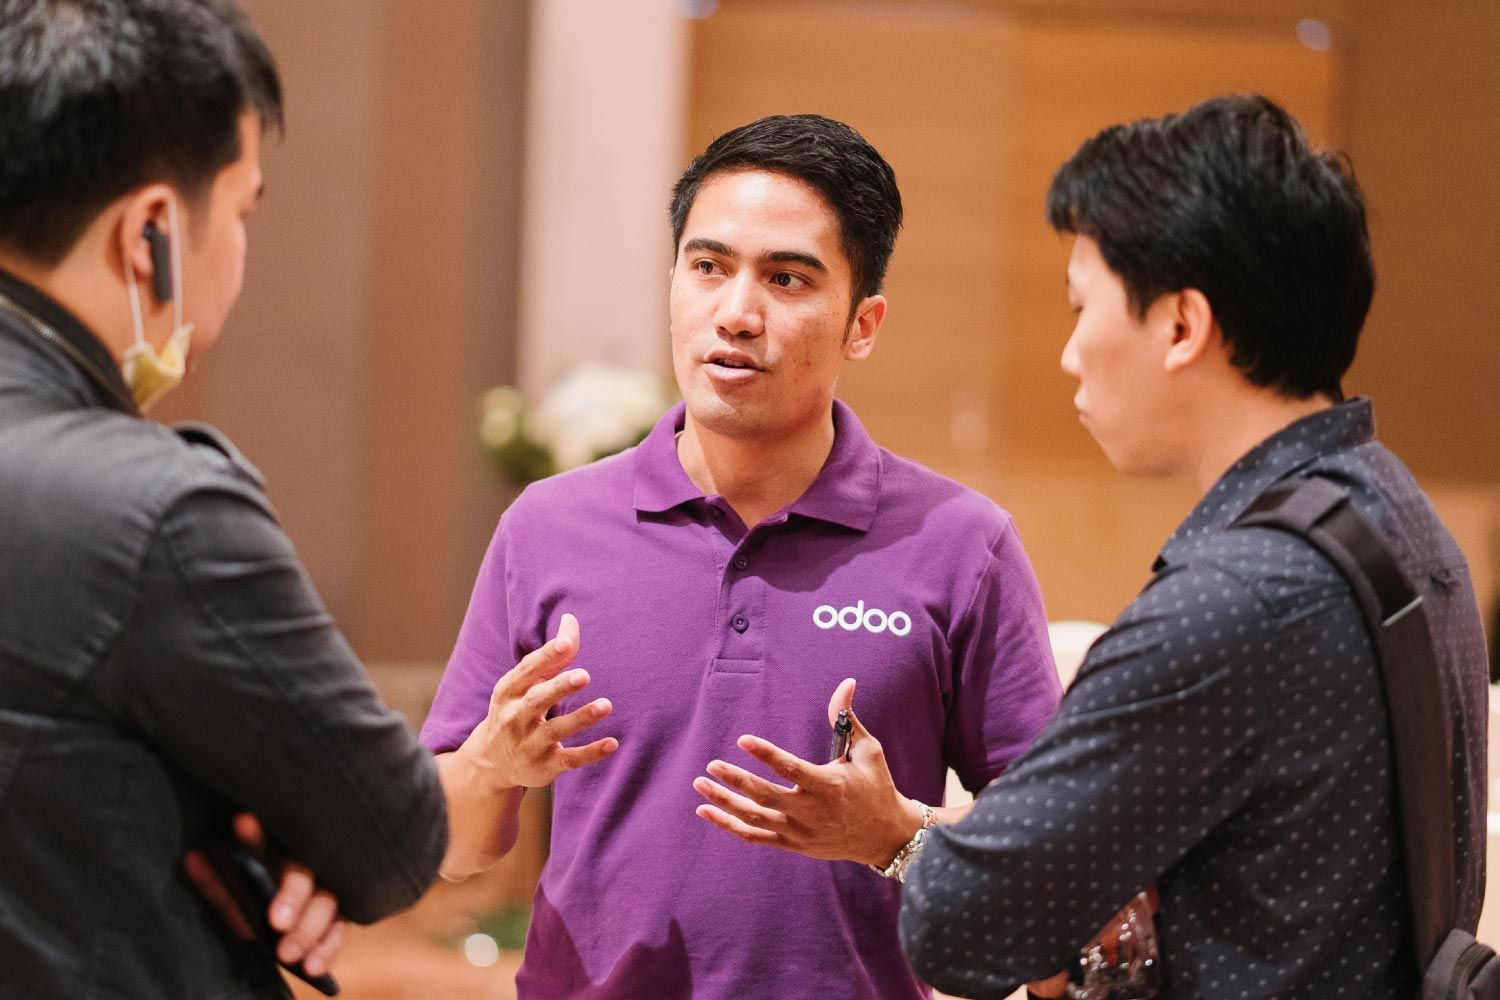 odoo staff talking to customers